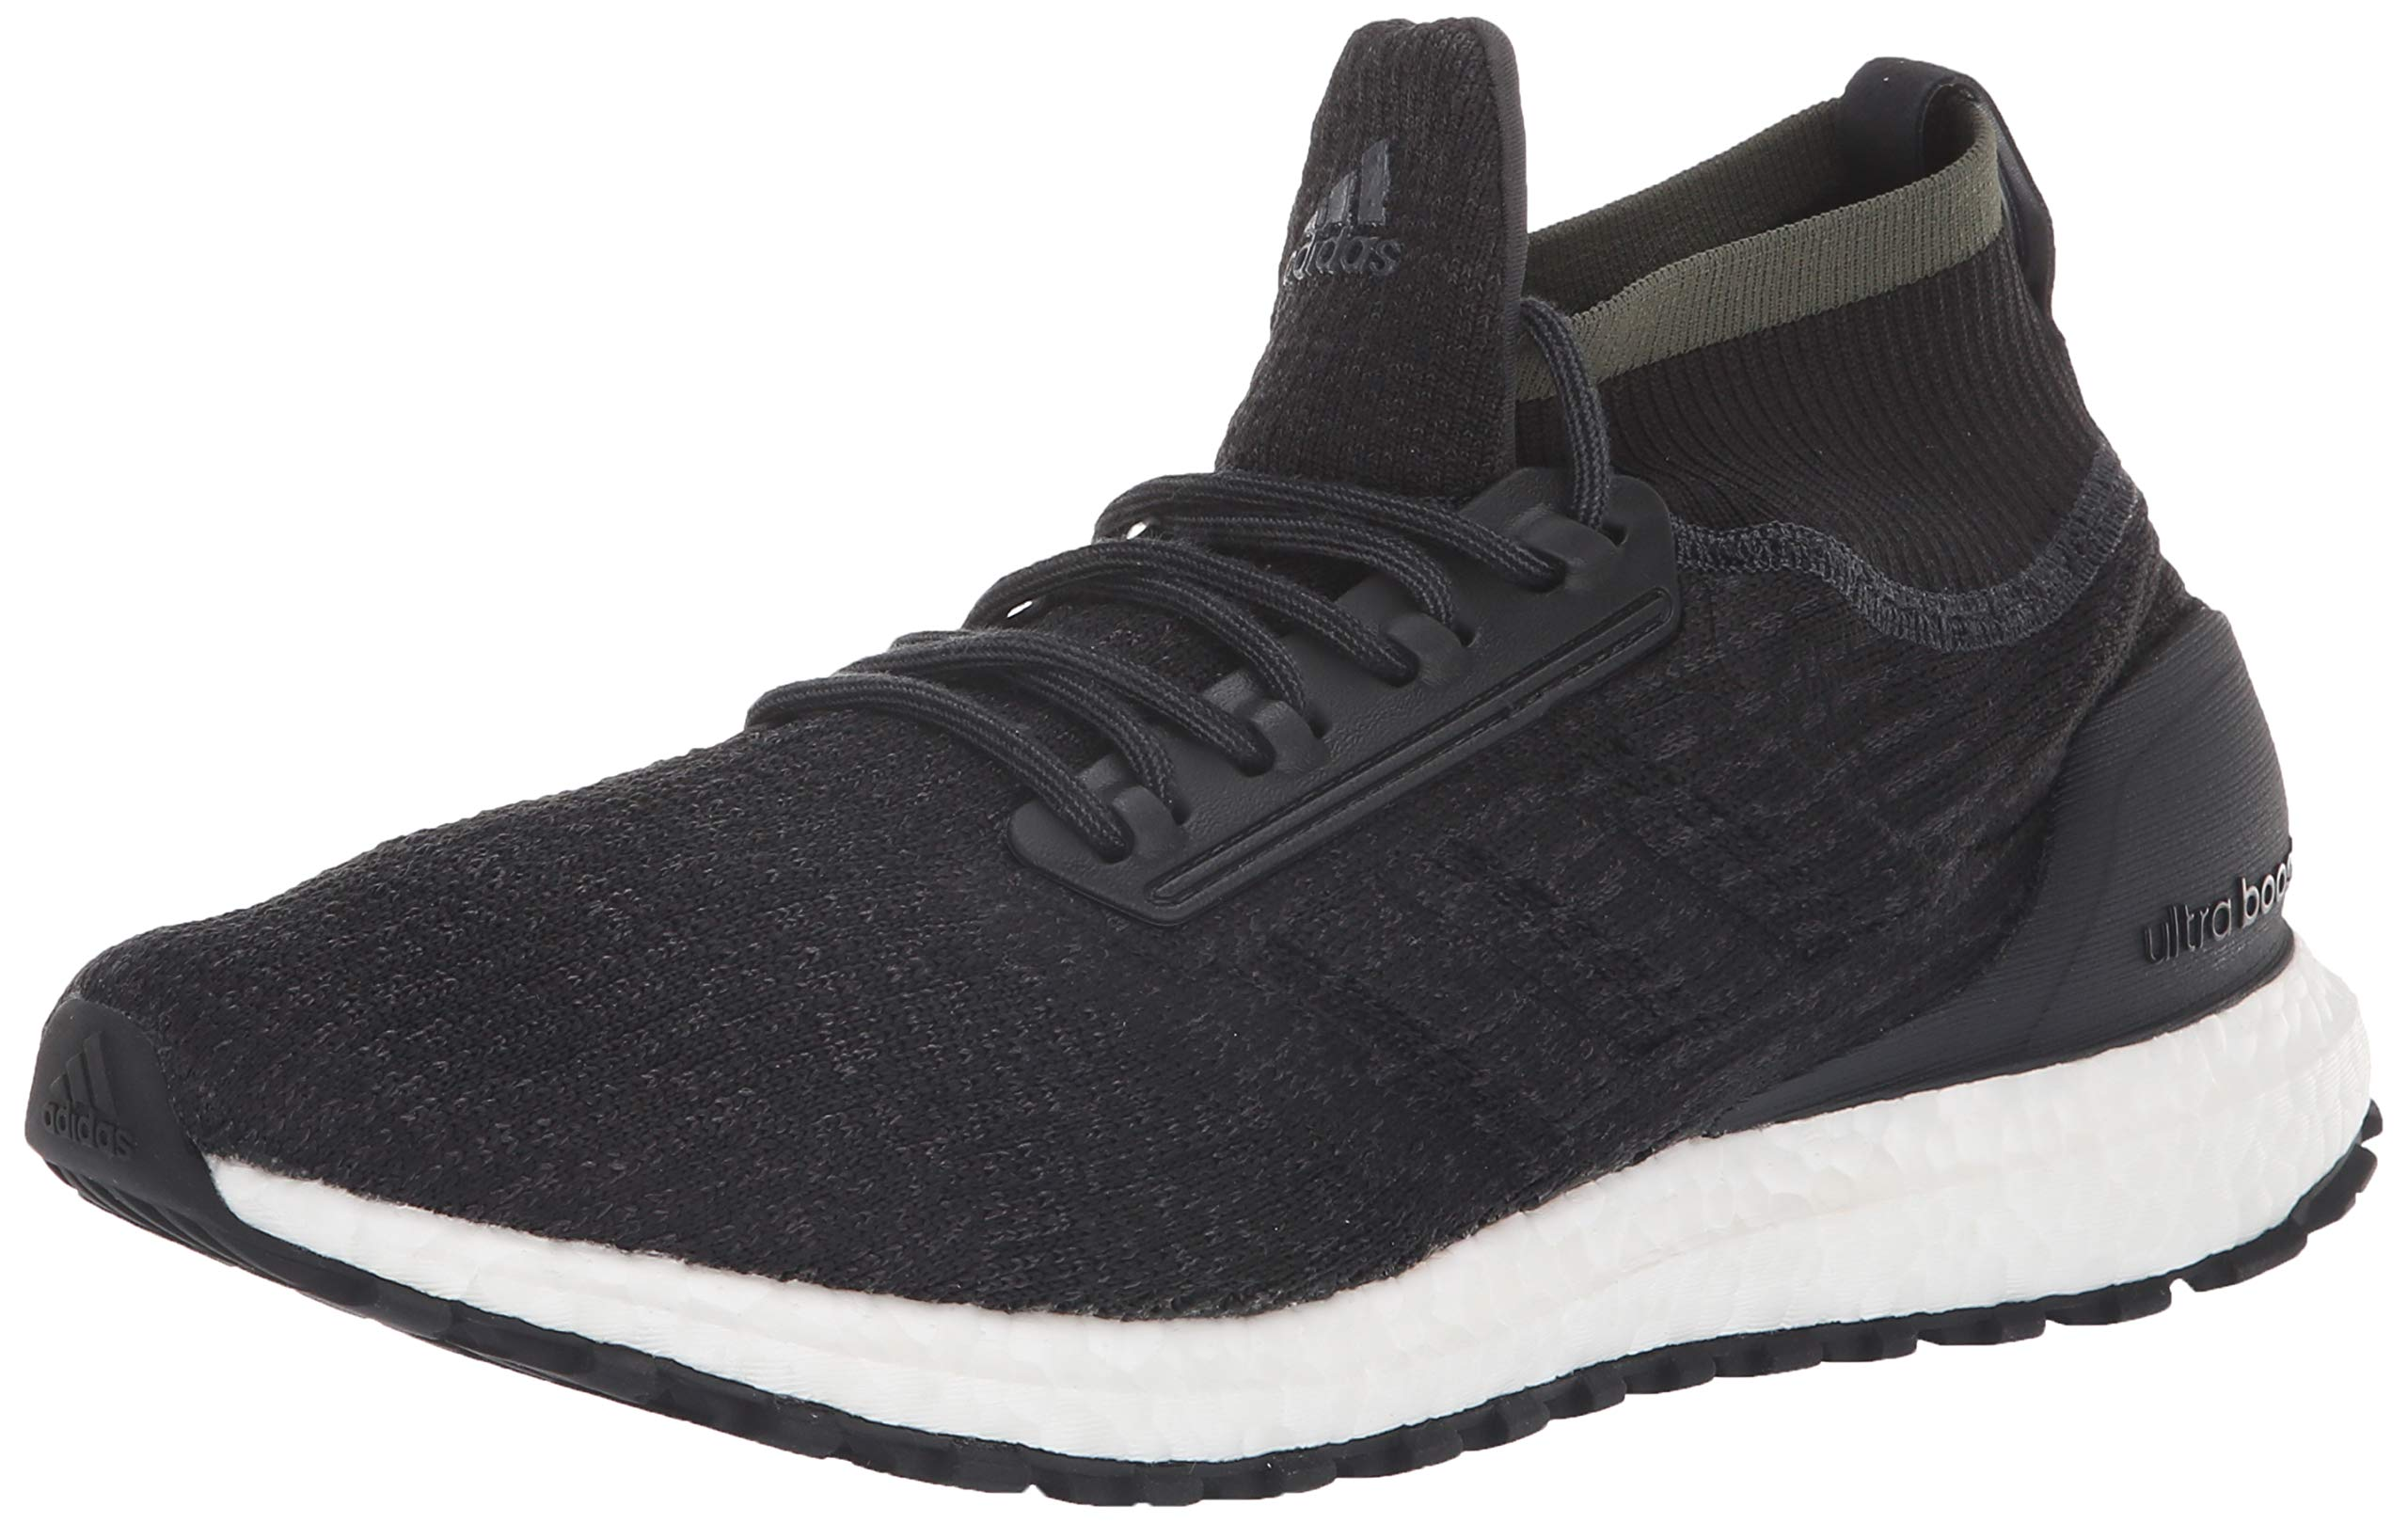 69a7e35c3bed7 Galleon - Adidas Men s Ultraboost All Terrain